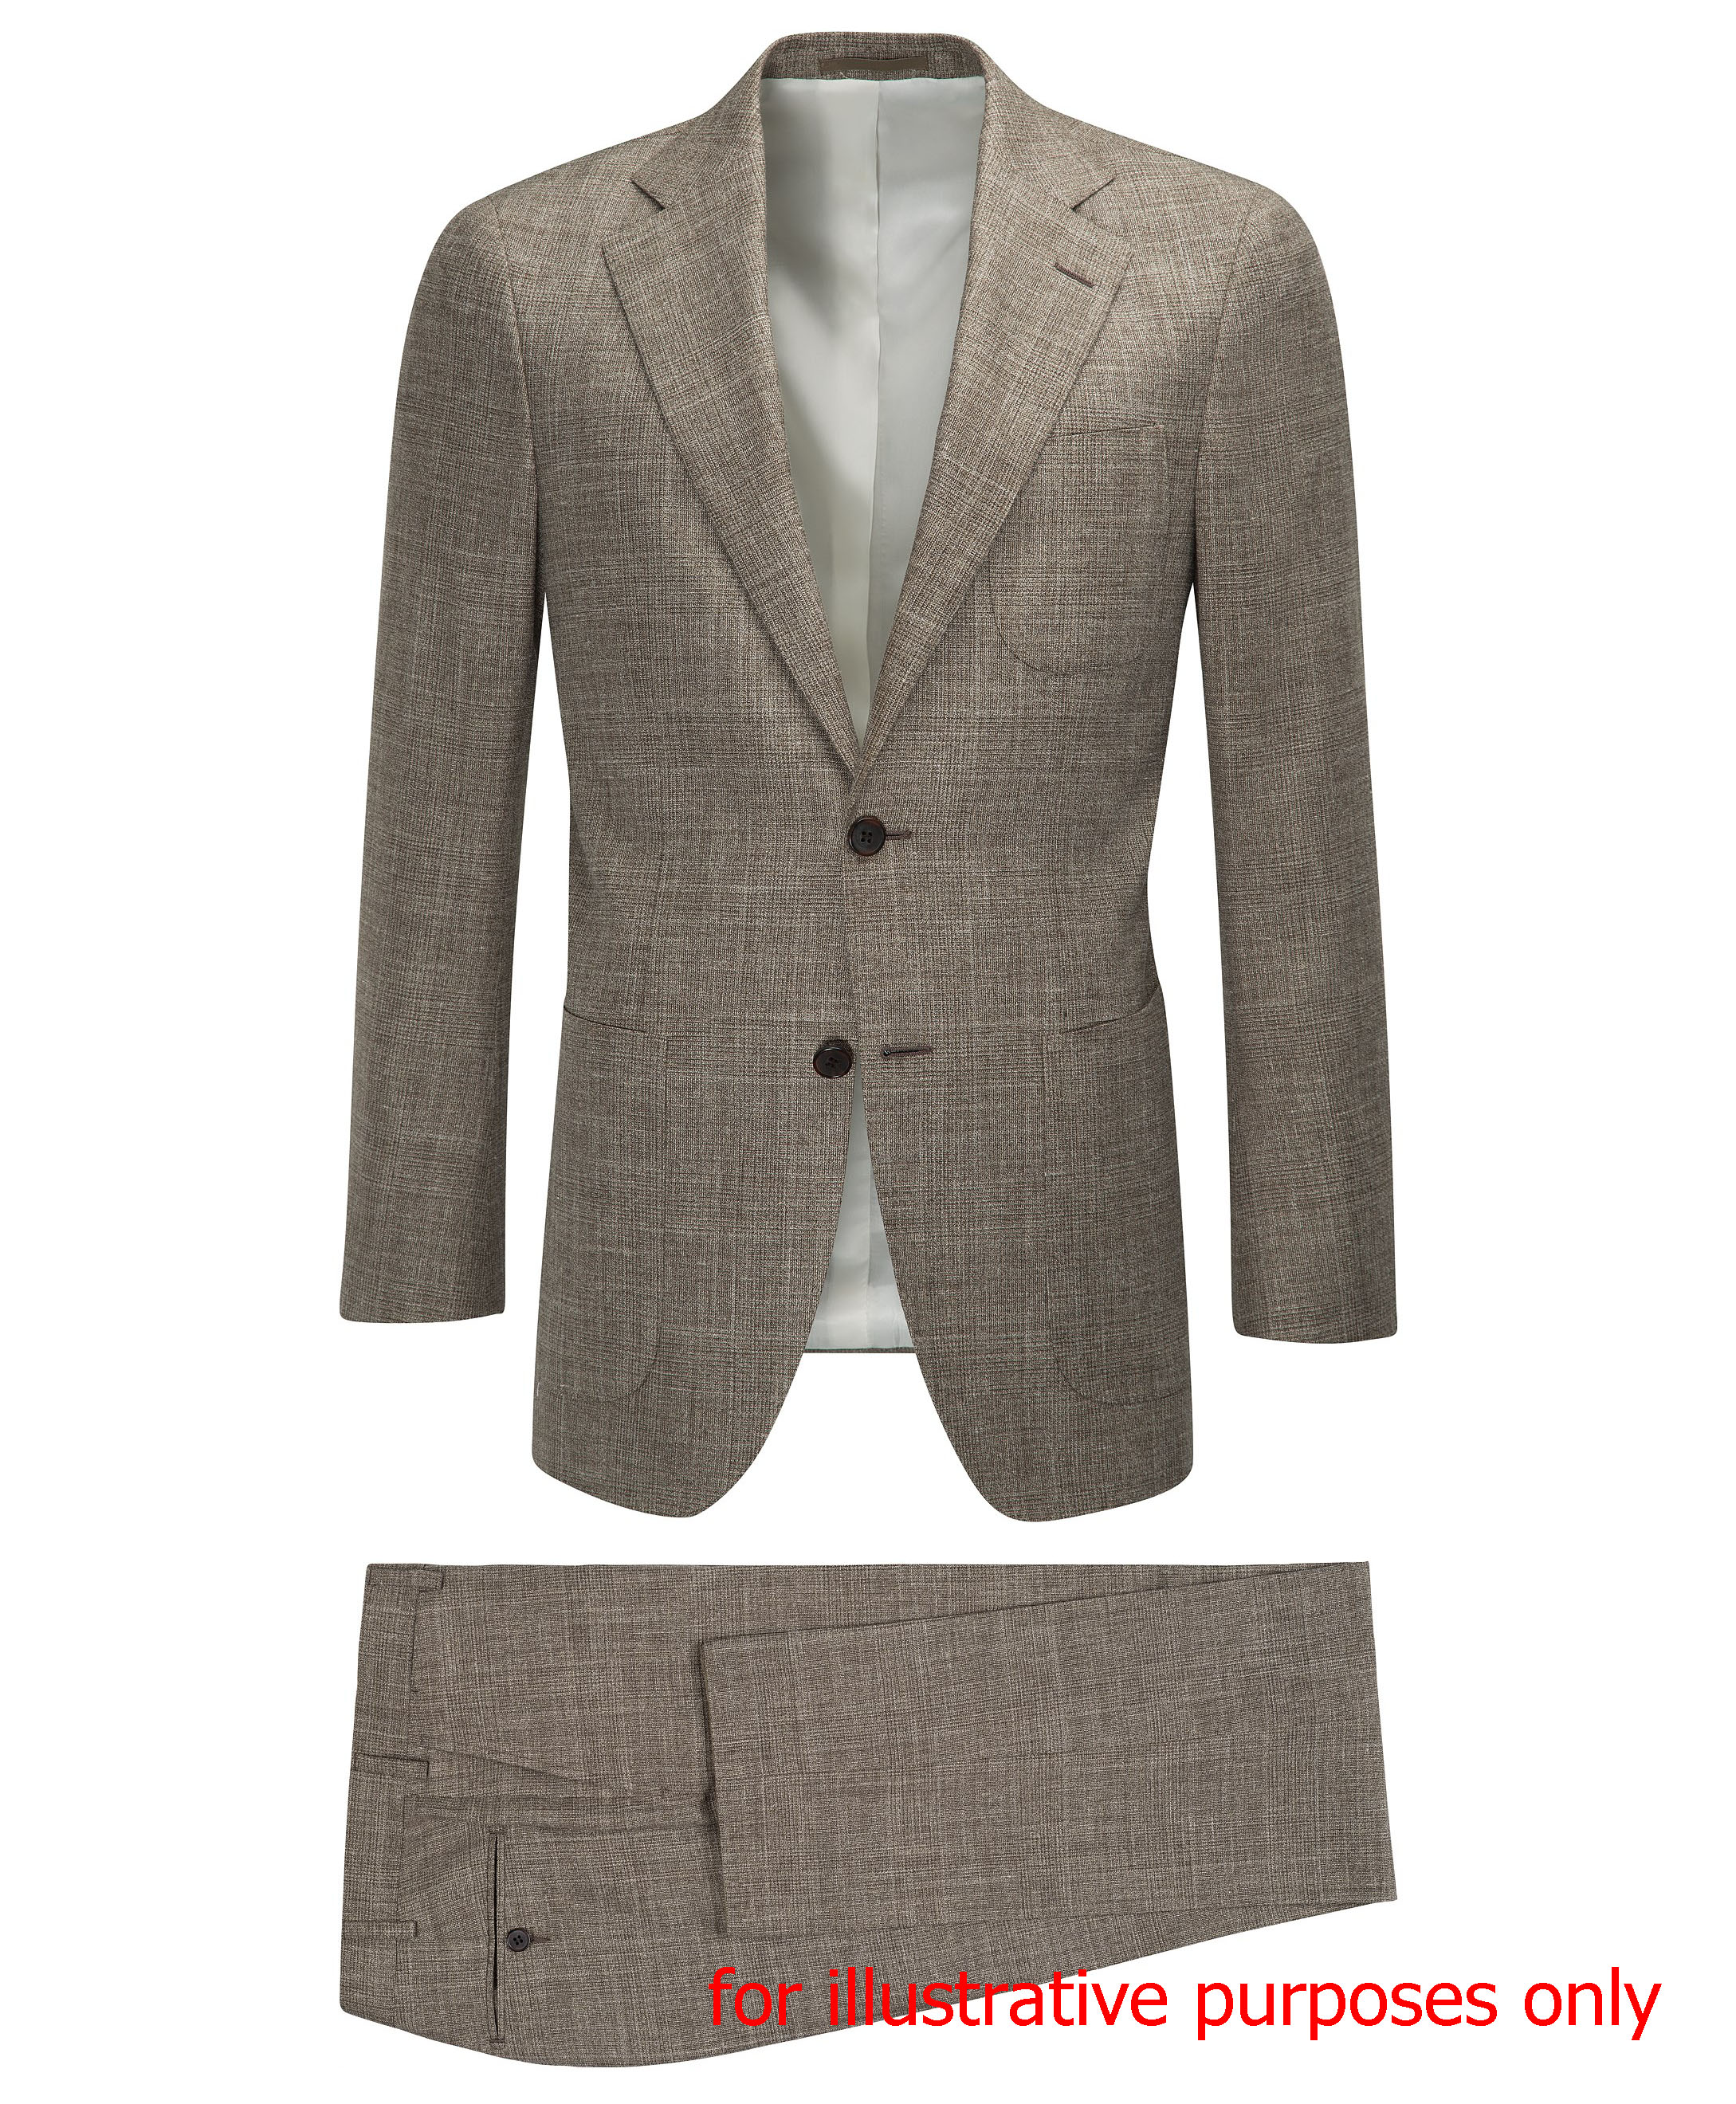 Suits_Brown_Check_Hudson_P5131_Suitsupply_Online_Store_5.jpg